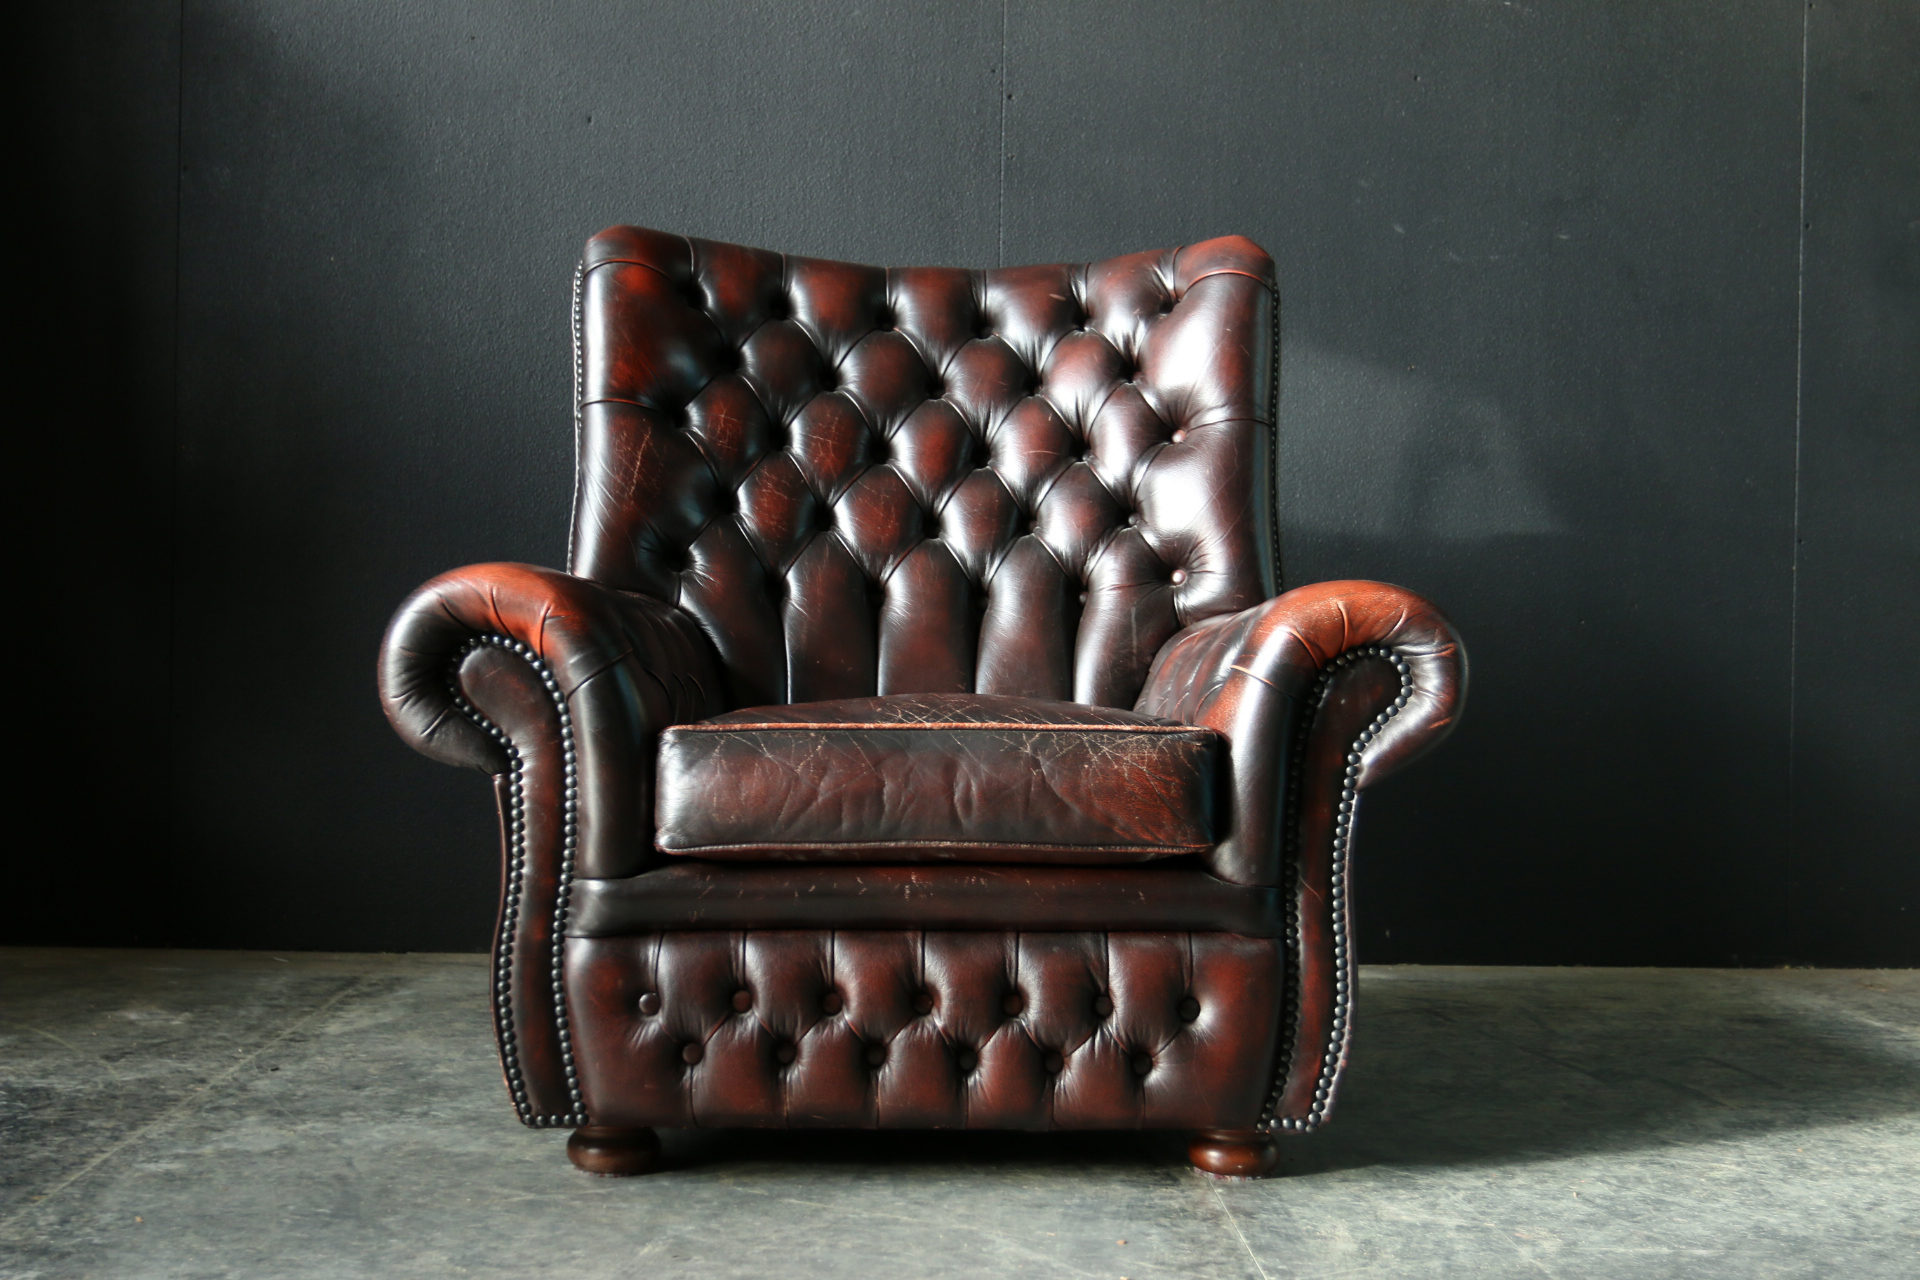 Rode Leren Chesterfield Bank.Chesterfield Dehuiszwaluw